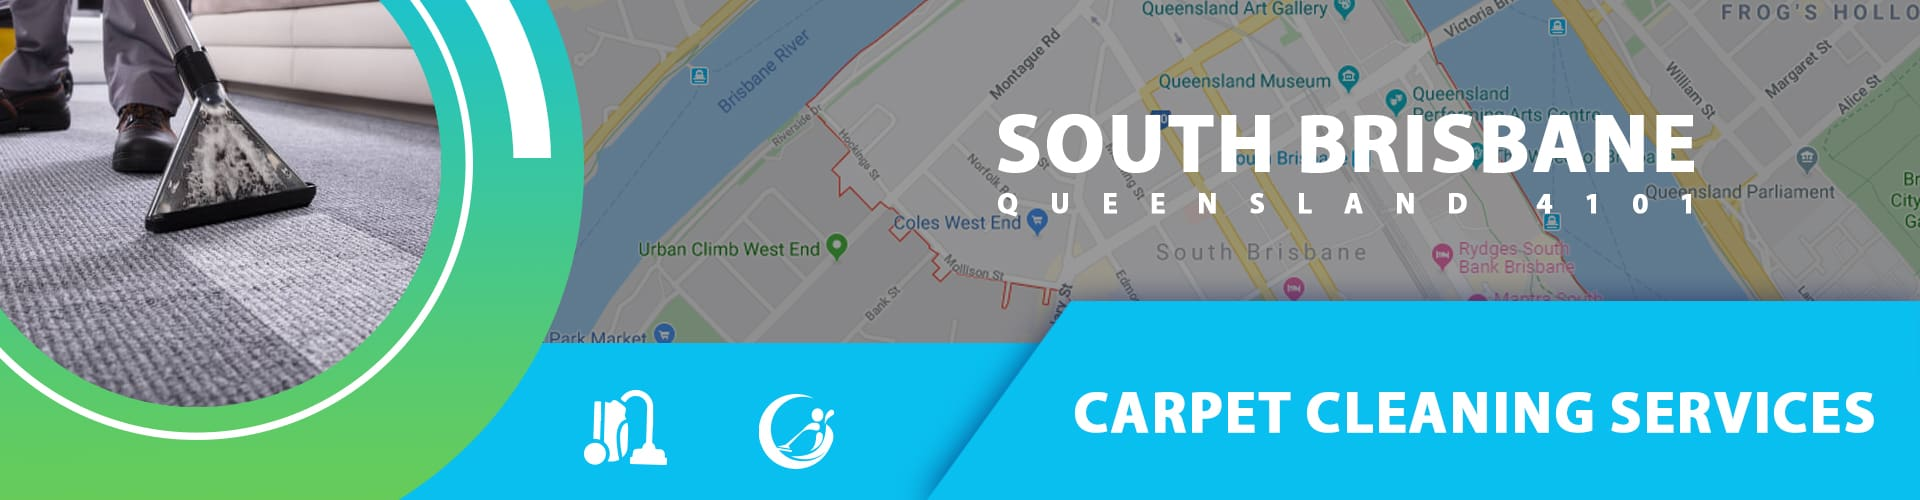 Carpet Cleaning South Brisbane